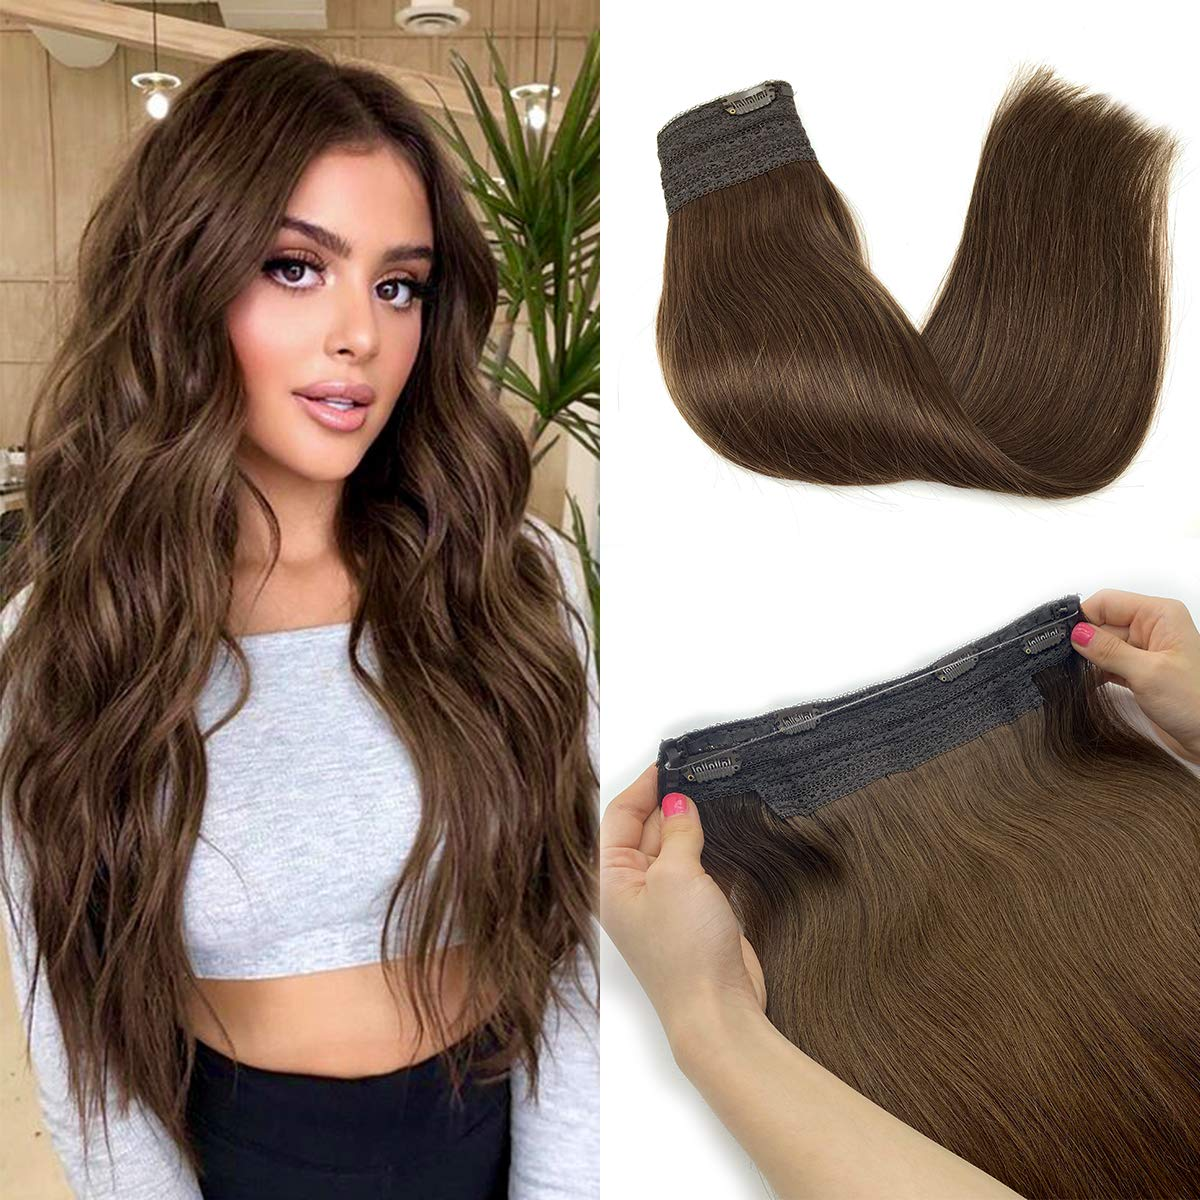 Headband Halo Extensions Piano Natural Straight Halo Hair Extensions With Clips Elasticity Invisible Wire Remy Hair Pieces